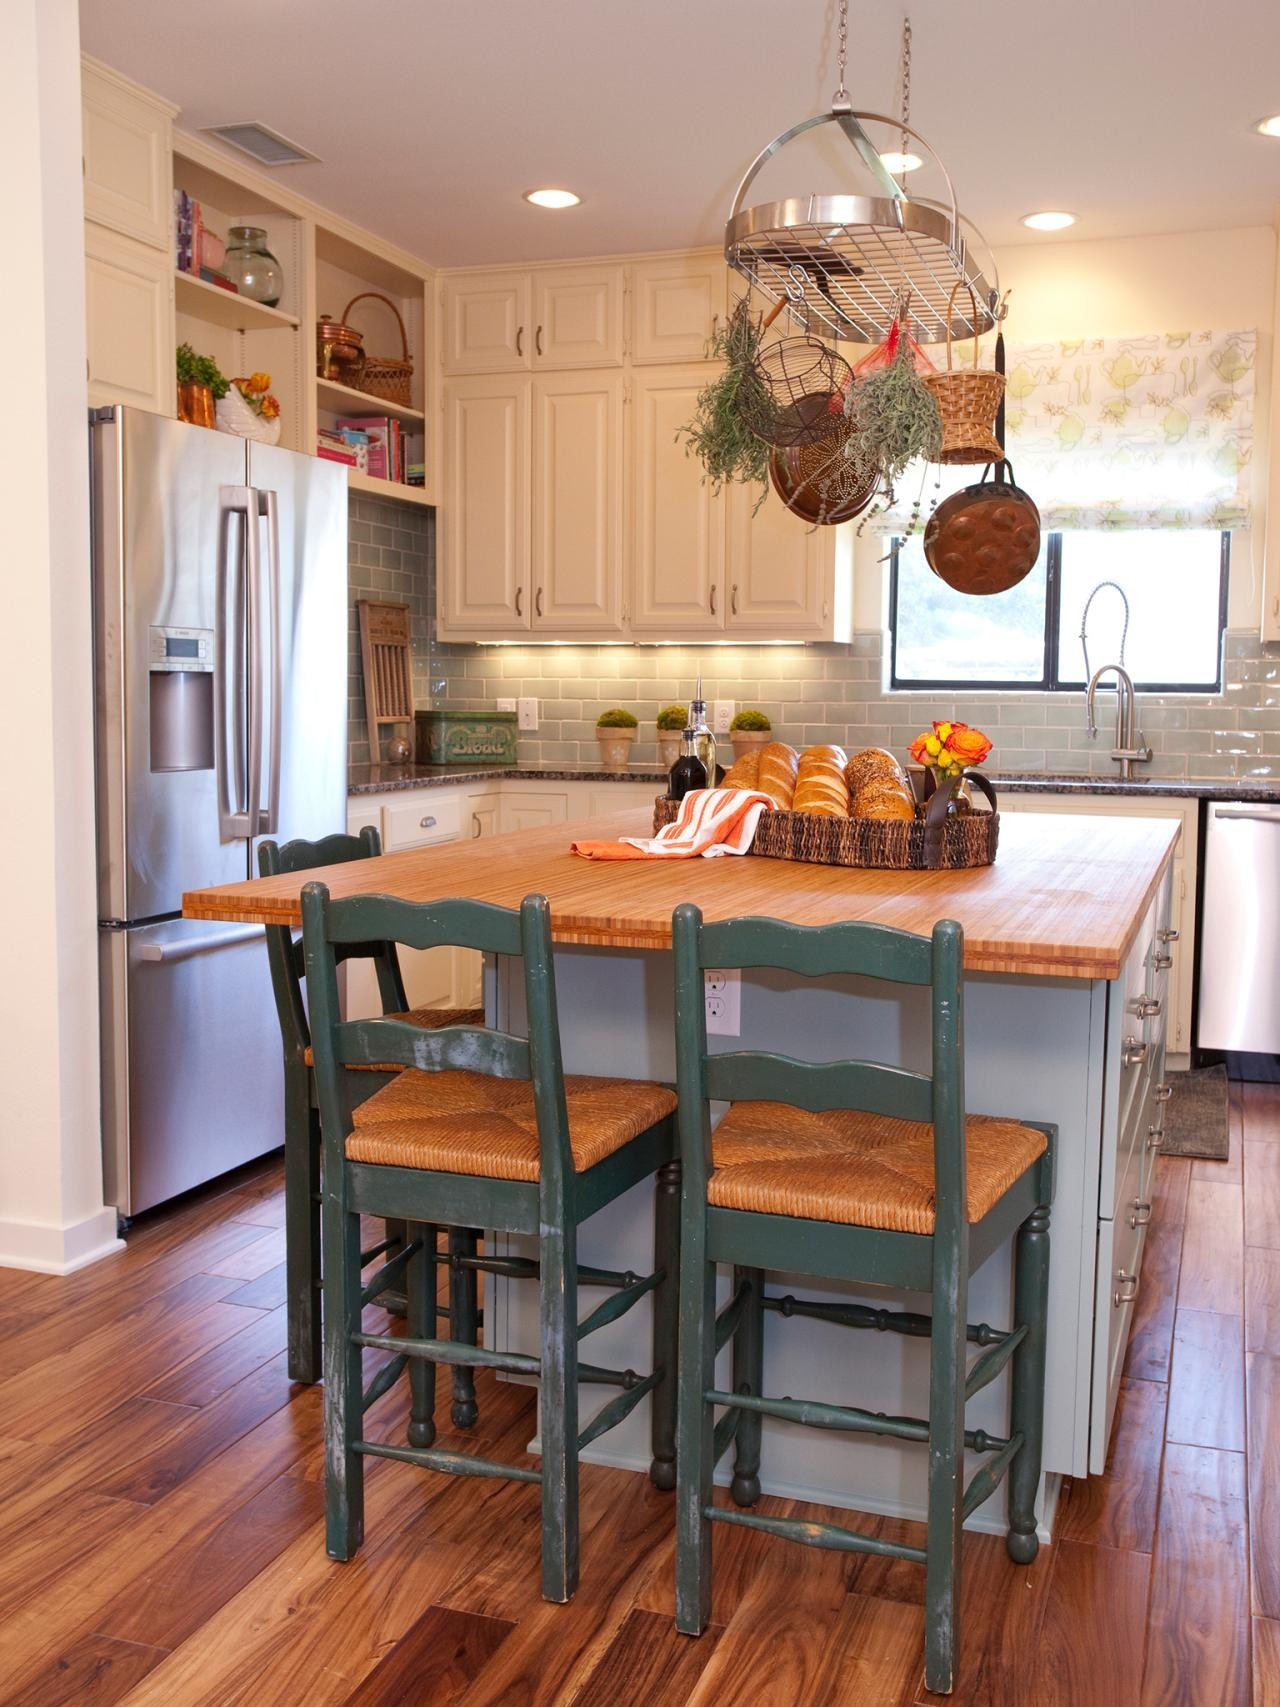 kitchen island ideas for small kitchens enchanting small kitchens with islands kitchen island ideas for advice PJTKAHP